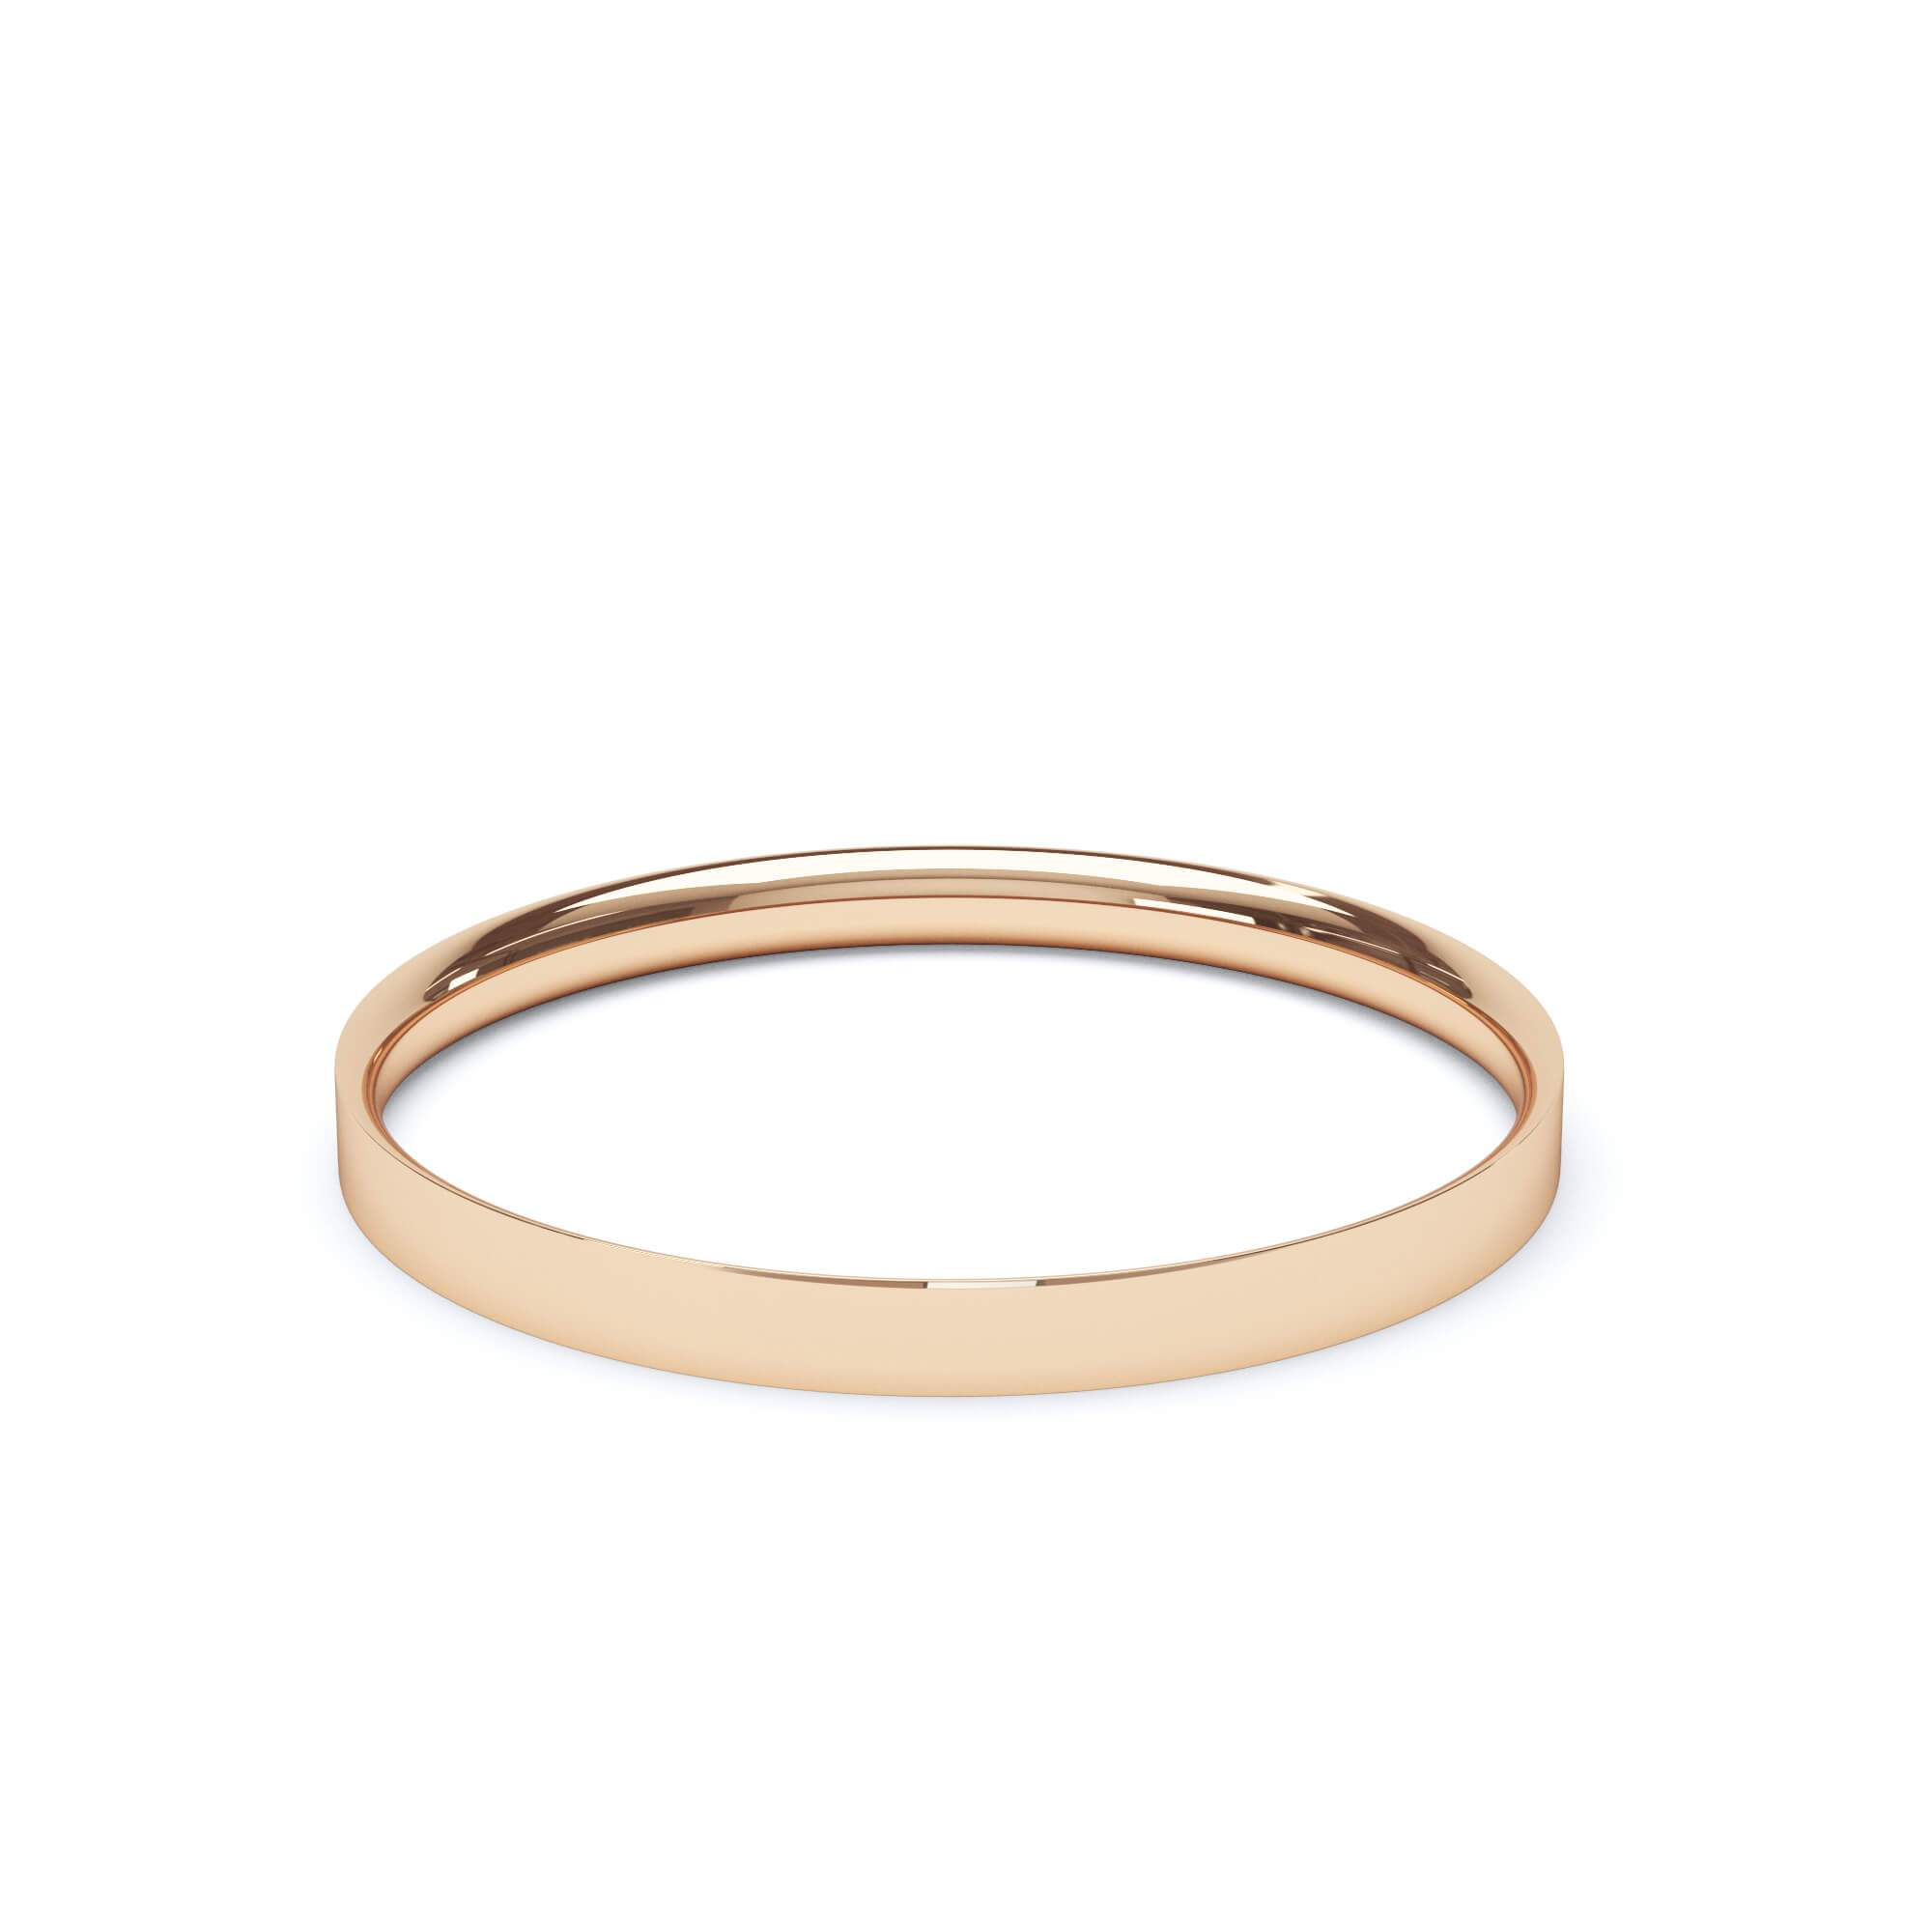 Lily Arkwright Wedding Bands 2.0mm / 18K Rose Gold Women's Plain Wedding Band Flat Court Profile 18k Rose Gold